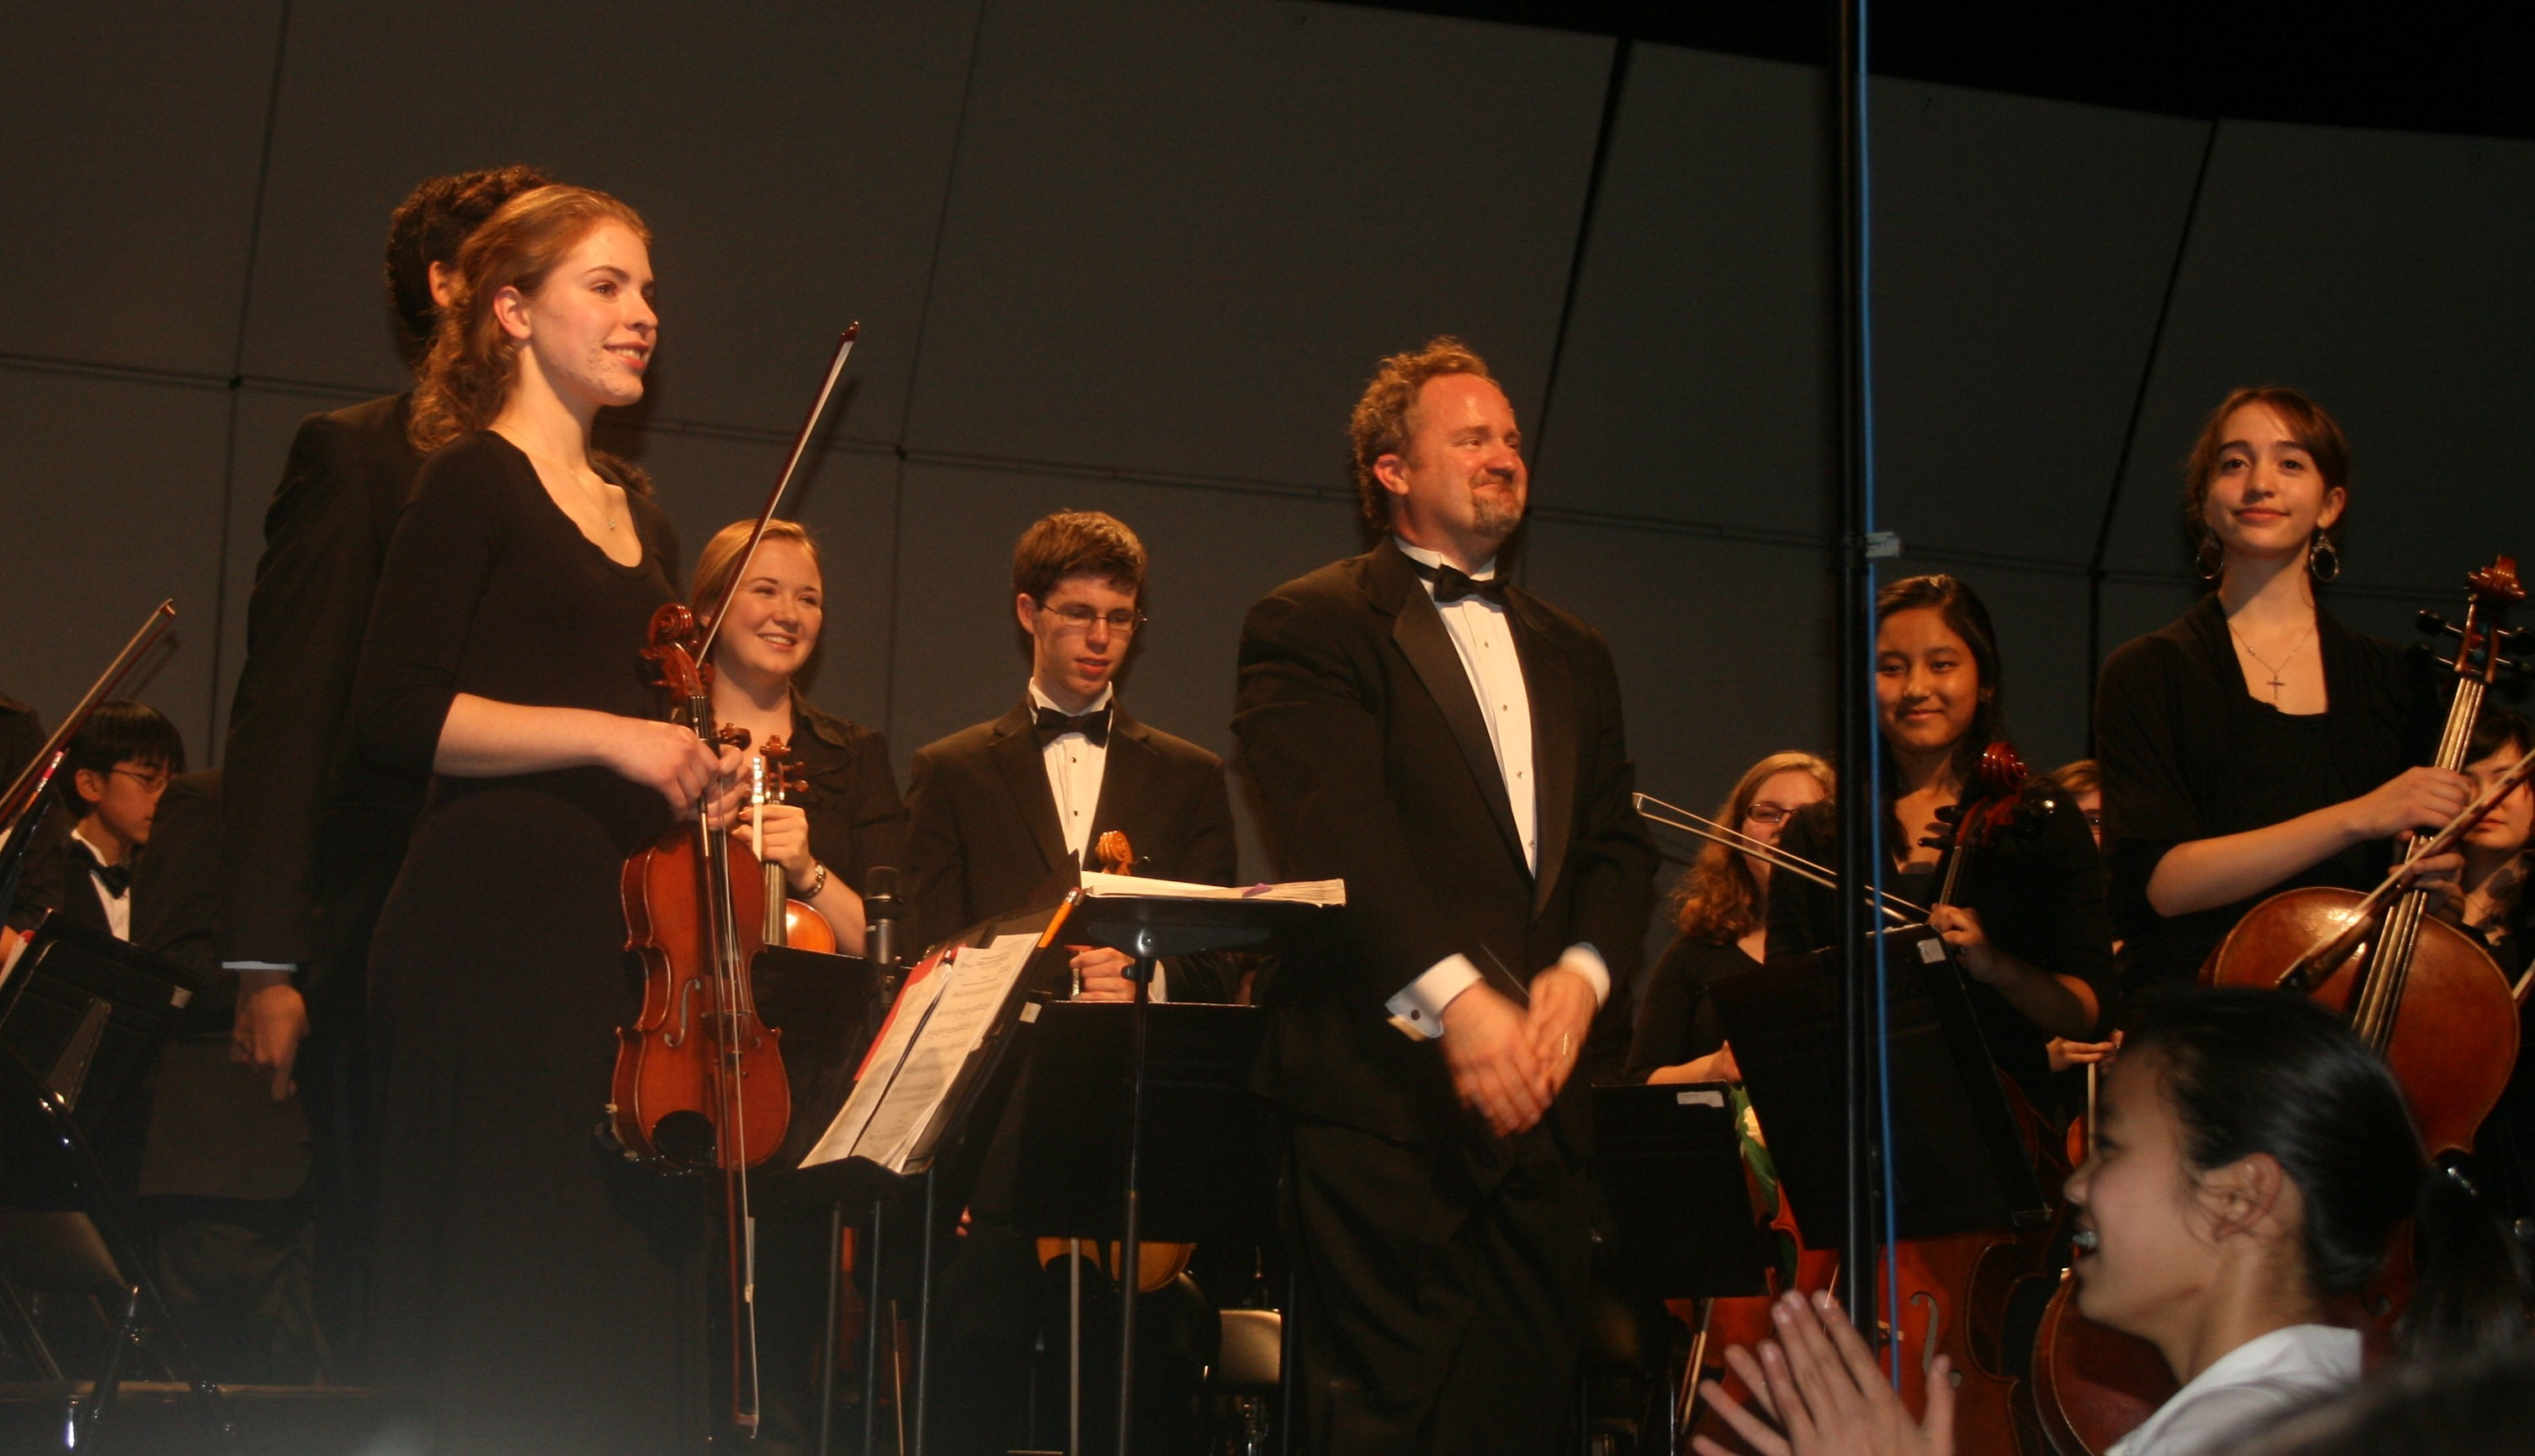 66a6e6be54ed1ce81d5d_concertmaster_and_conductor_grogan.jpg